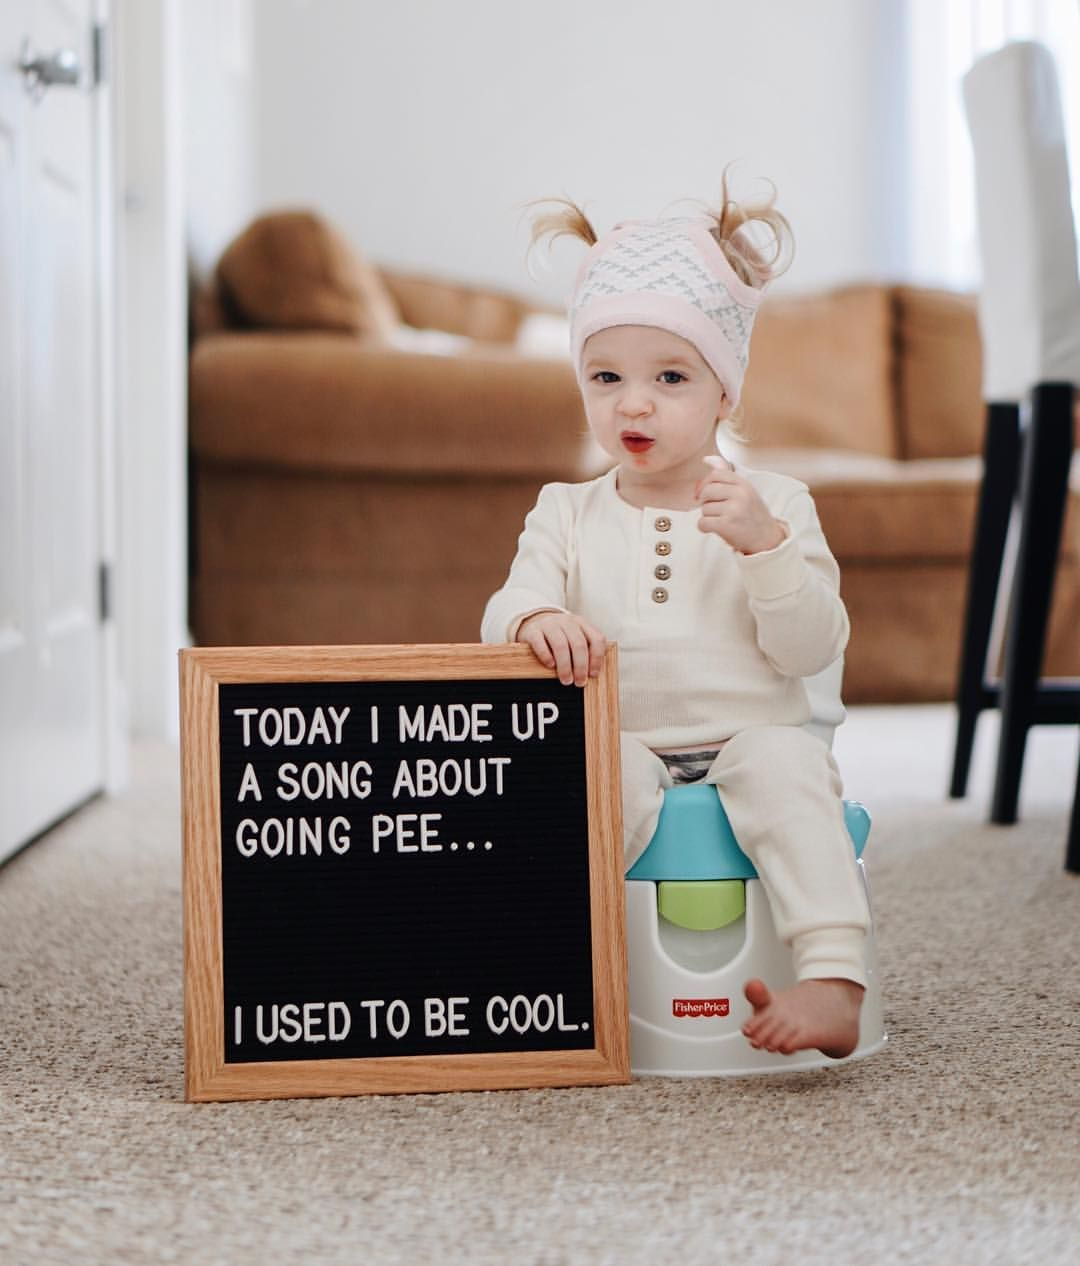 Letter Board Potty Training A Toddler Fisher Price Potty Instagram Mrs Happygilmore Baby Milestones Pictures Letter Board Lettering